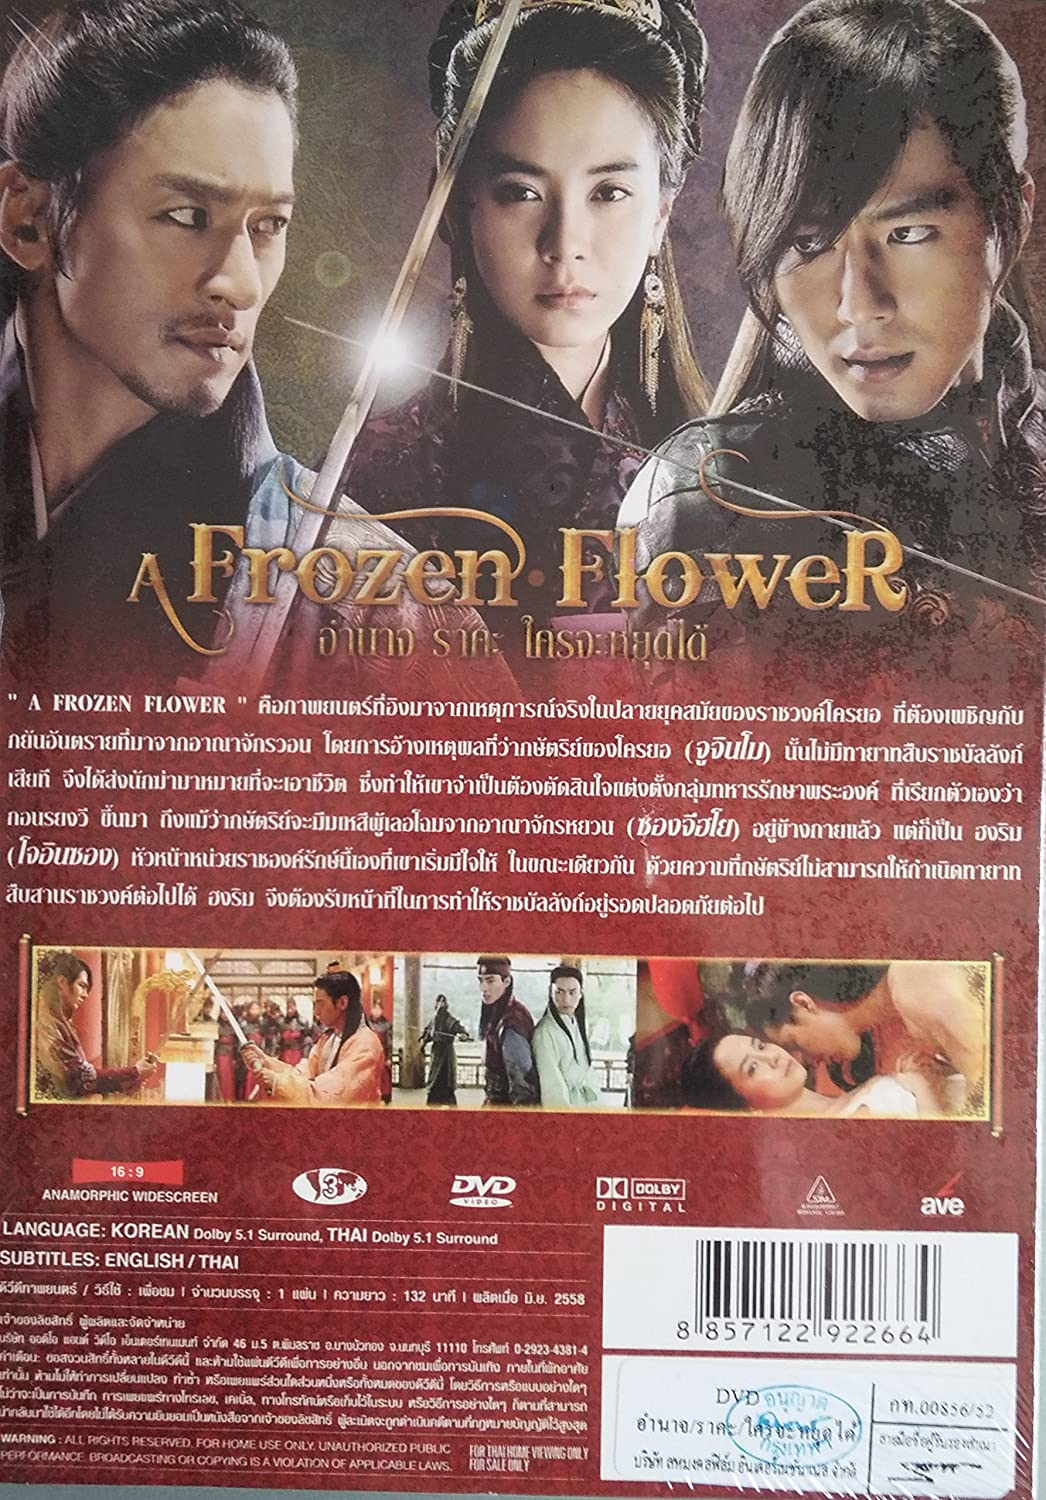 Frozen Flower 2008 Korean Historical Drama Eng Subs Co Uk